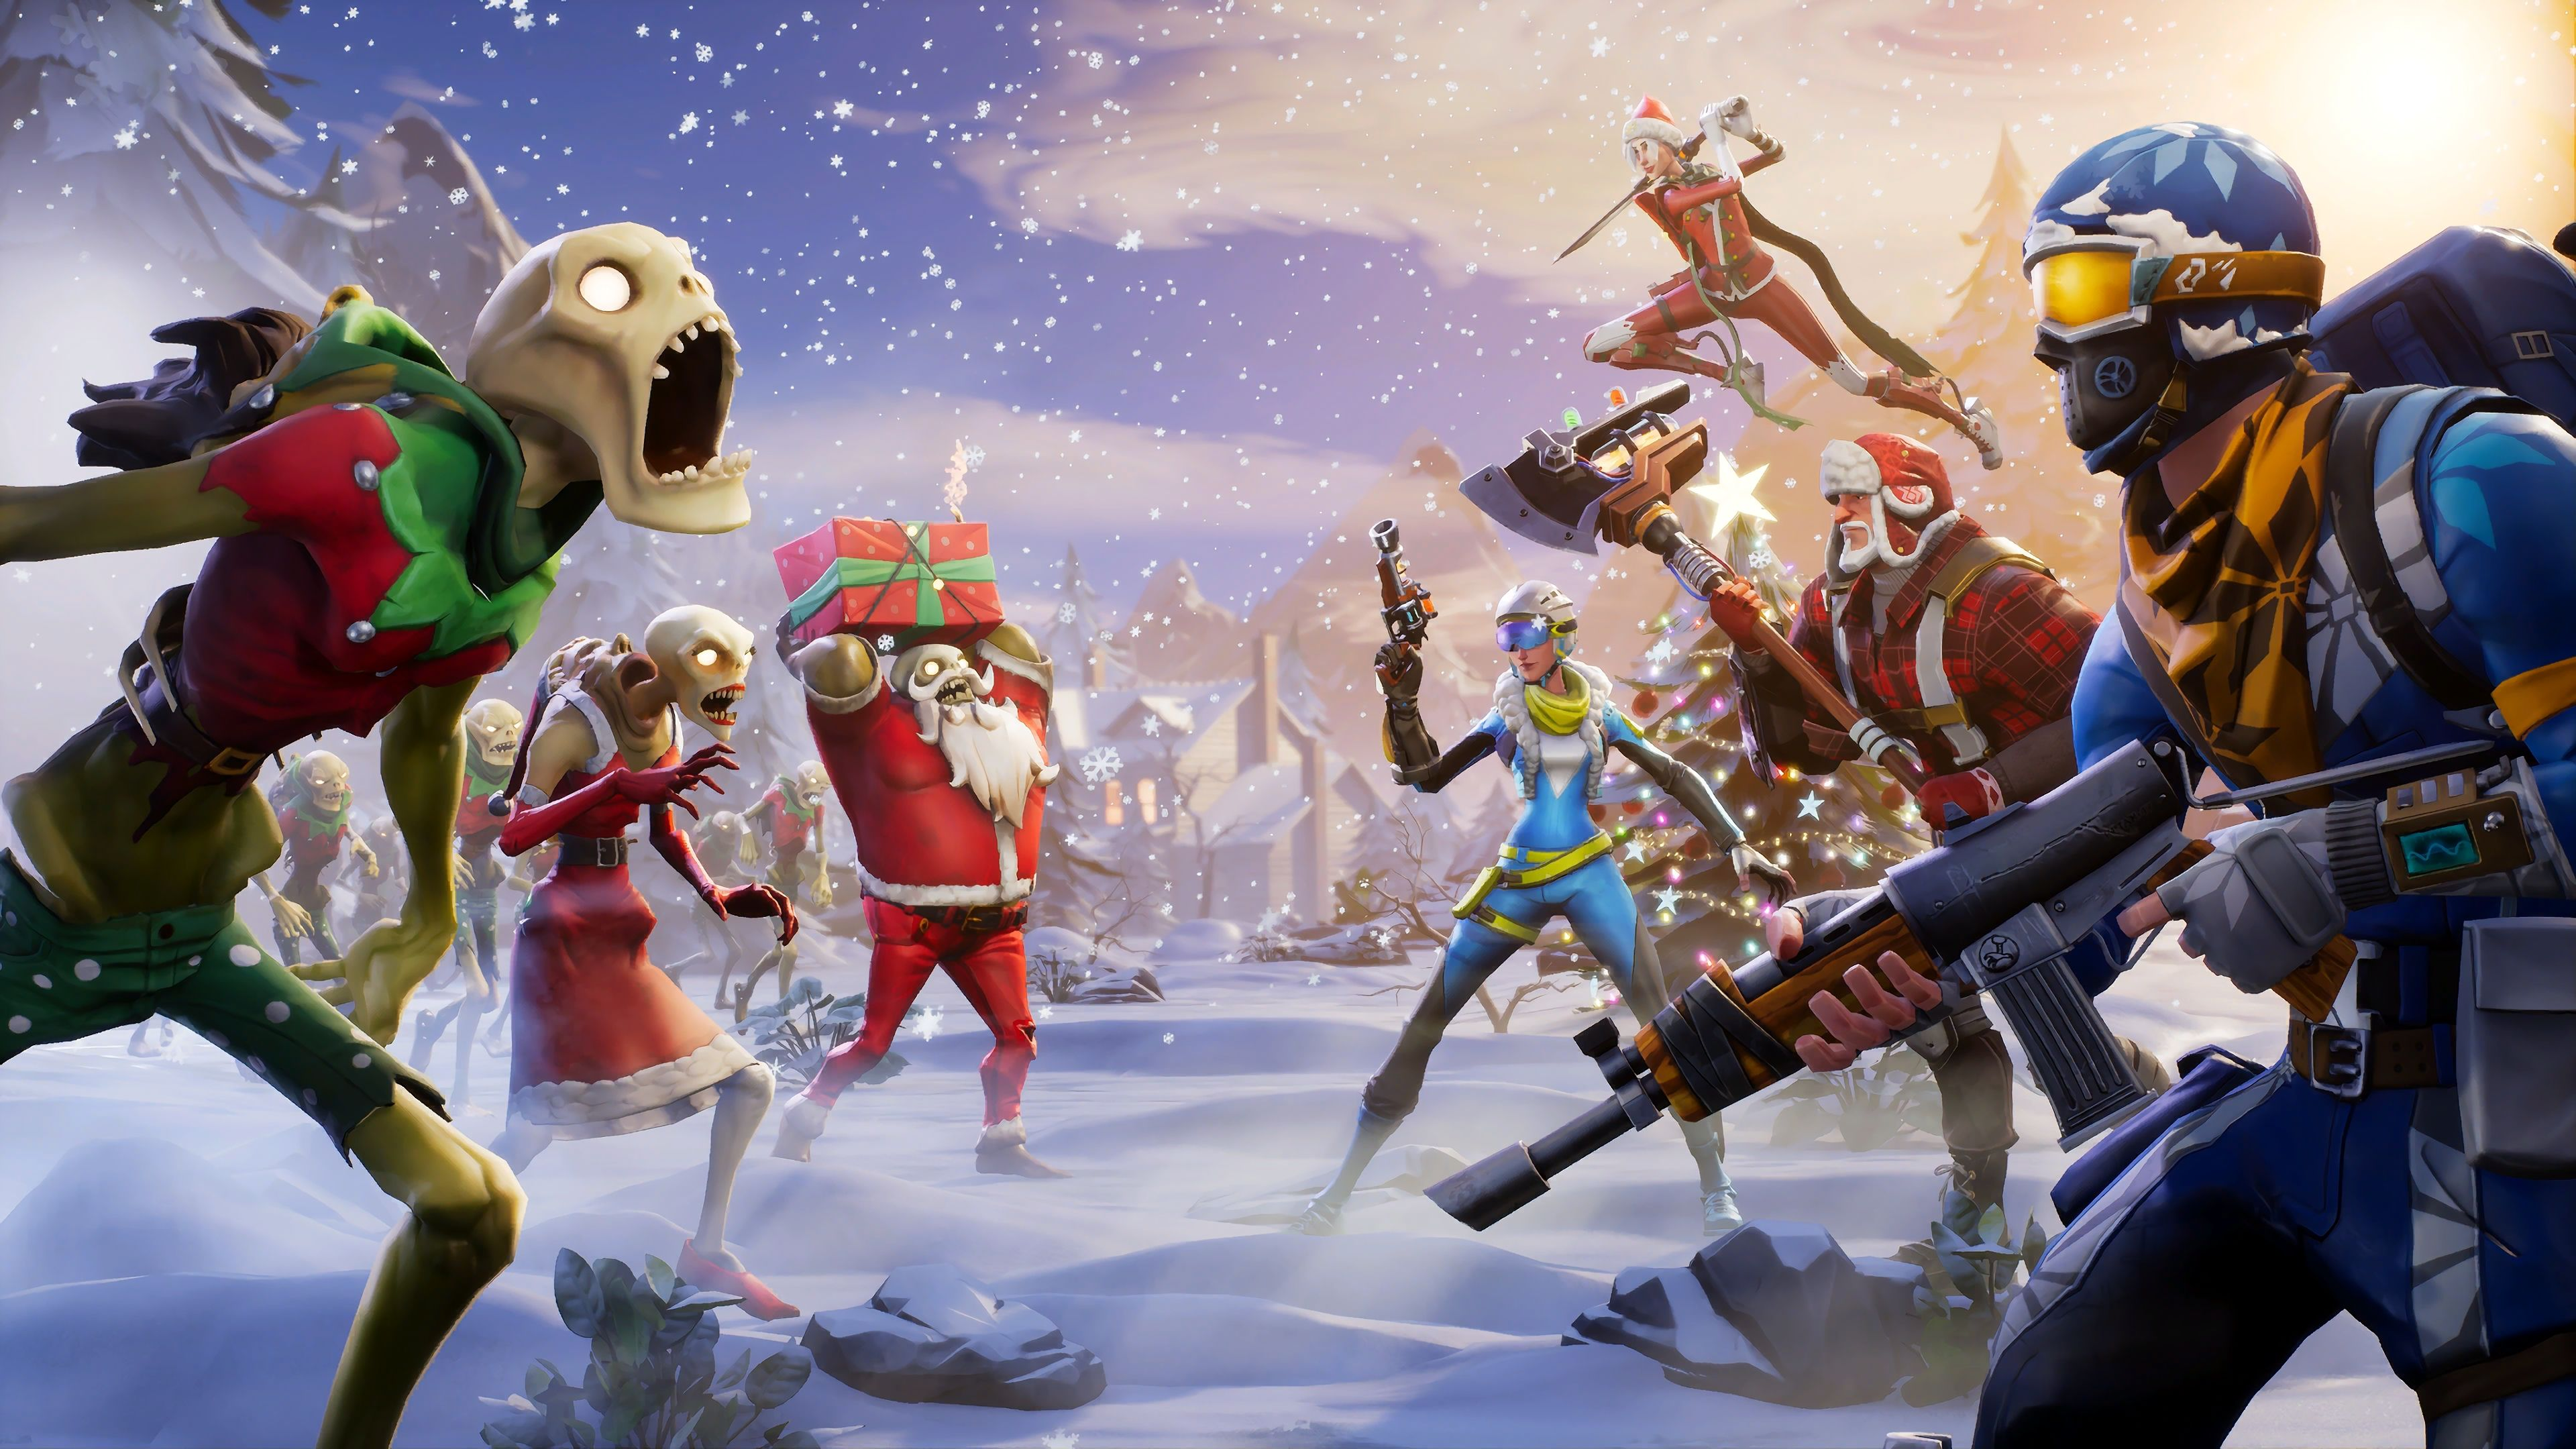 Fortnite Clothes And Accessories In Stock With World